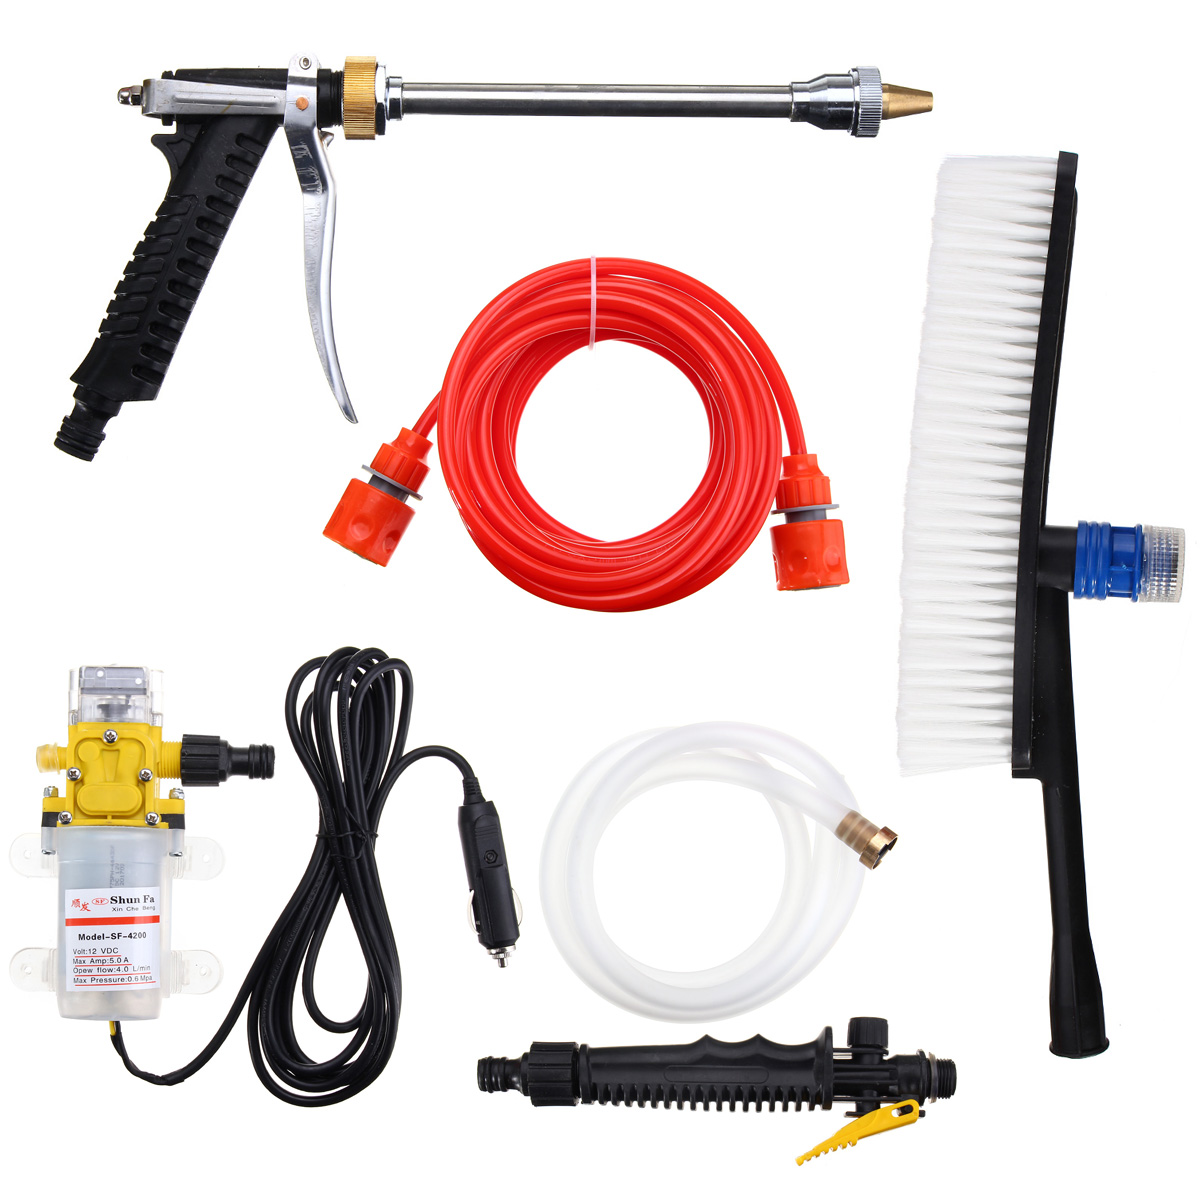 12V 100W 160PSI Car Washer Cleaner Water hose Wash Pump Sprayer with Clean brush Kit Car Washer Tools